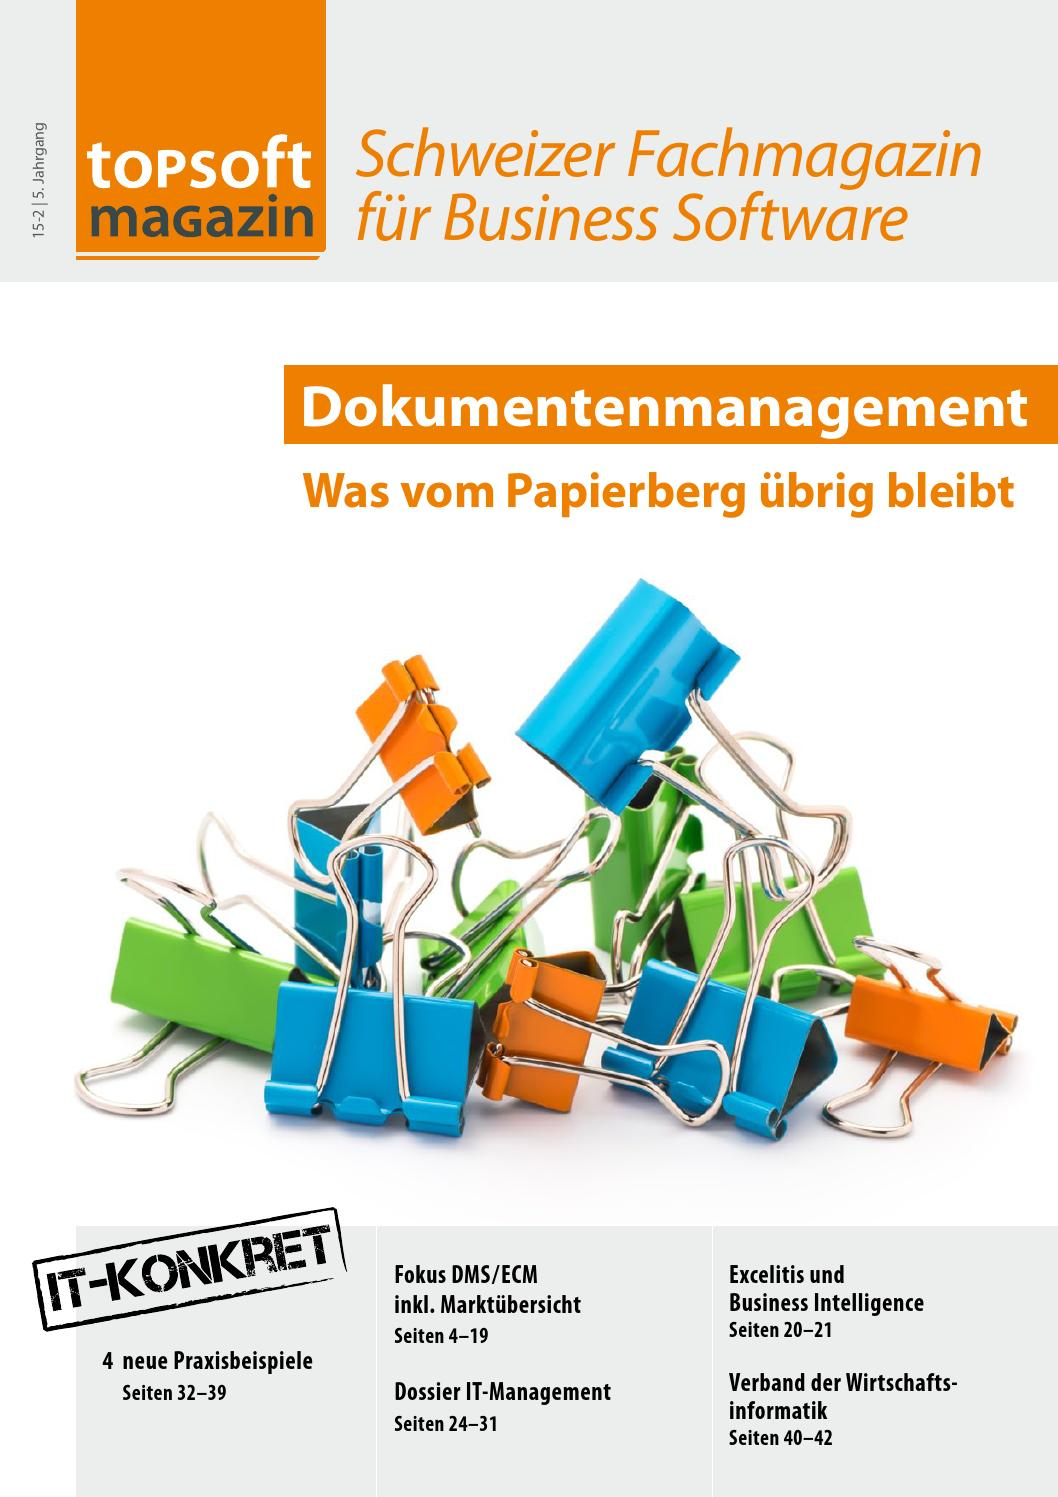 topsoft magazin 15-2: Dokumentenmanagement - was vom Papierberg ...